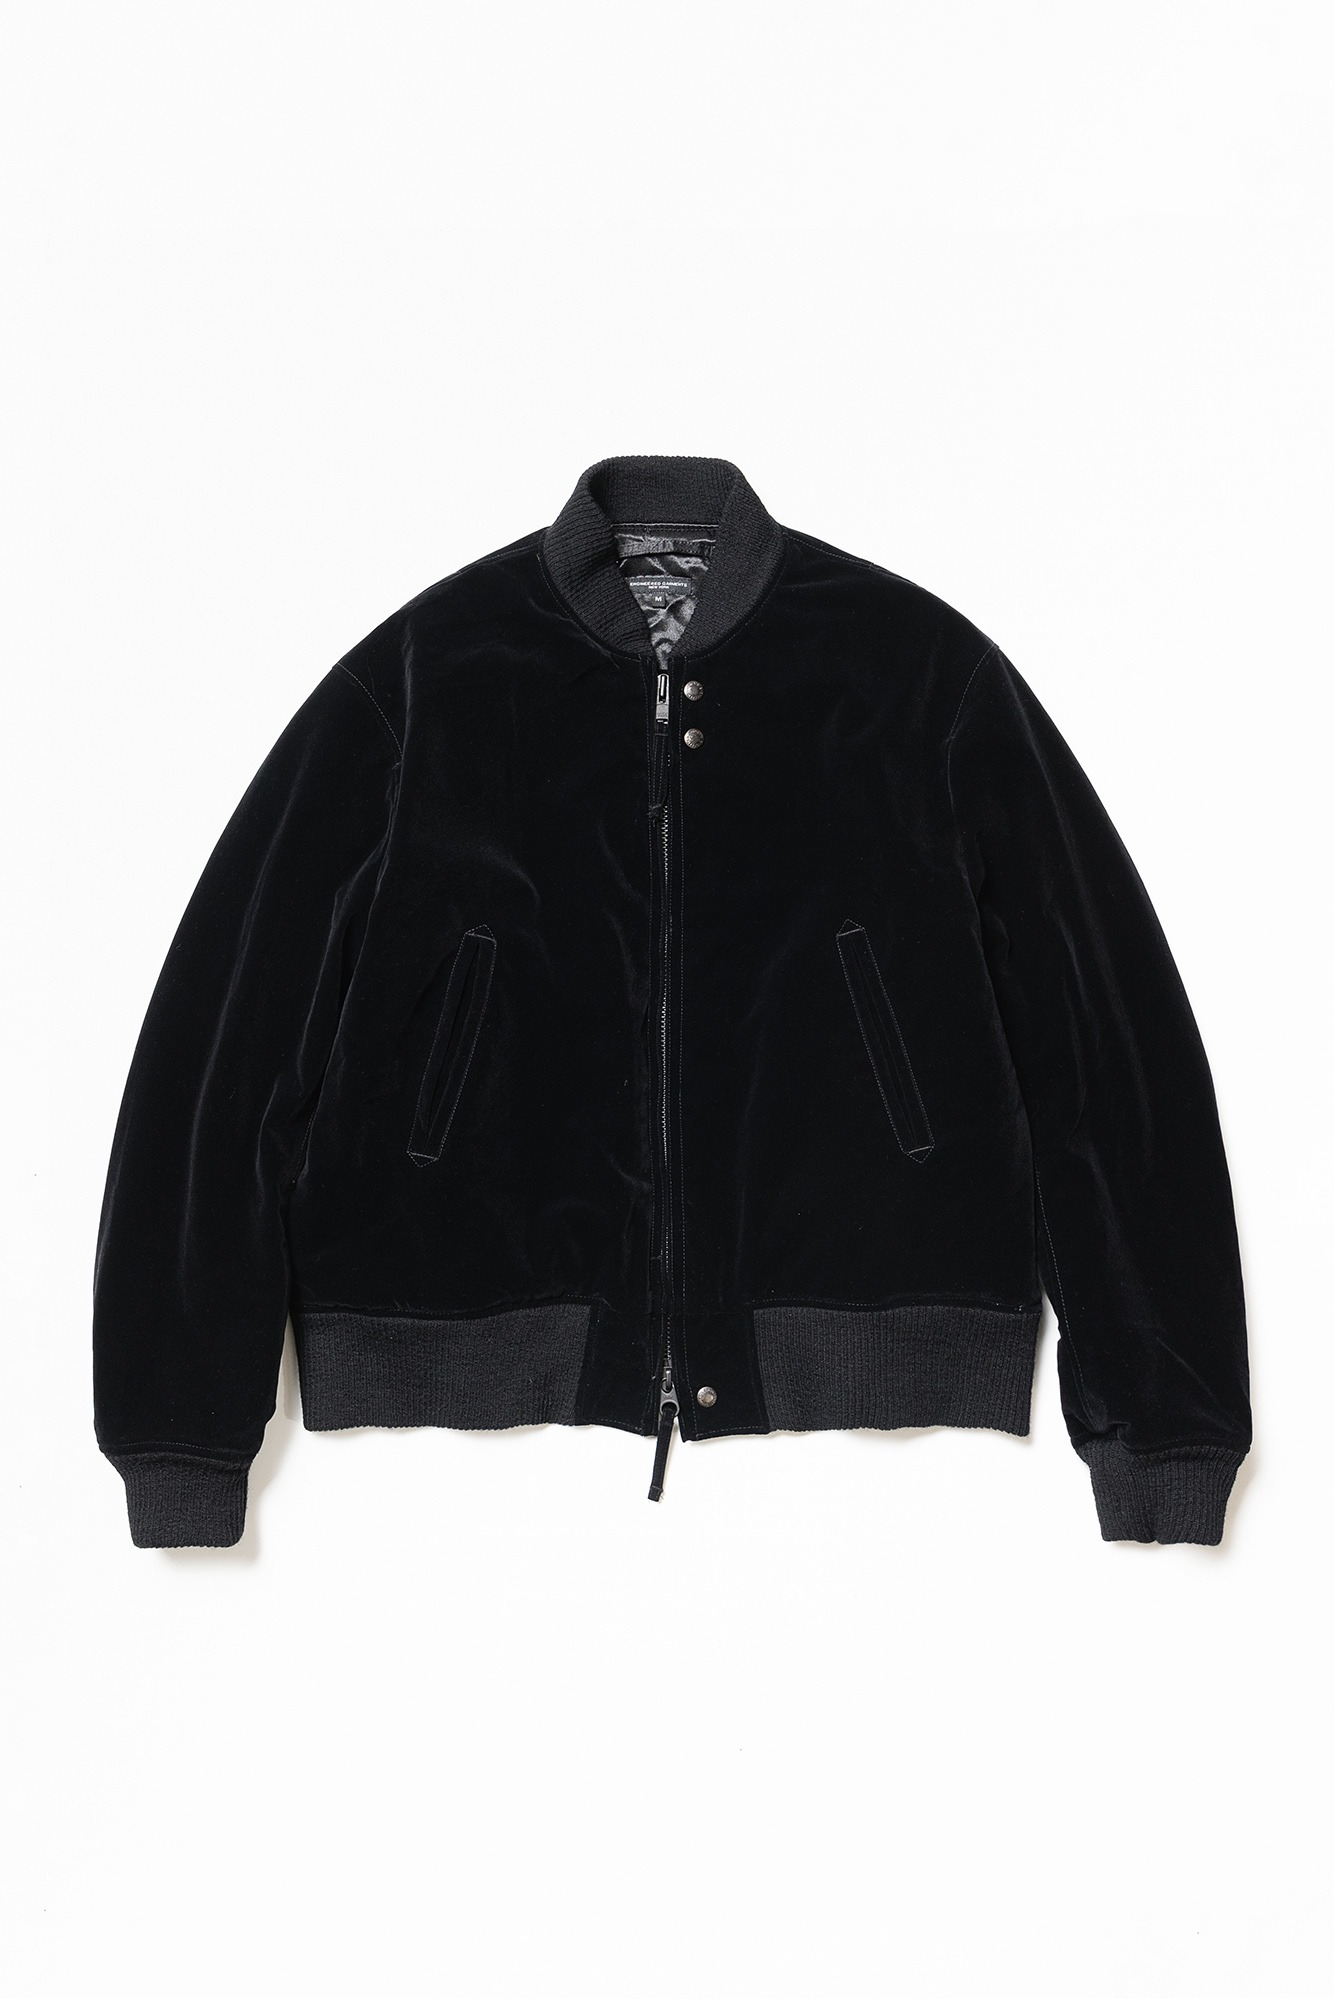 "ENGINEERED GARMENTS SVR jacket ""Black Flocked Velveteen"""